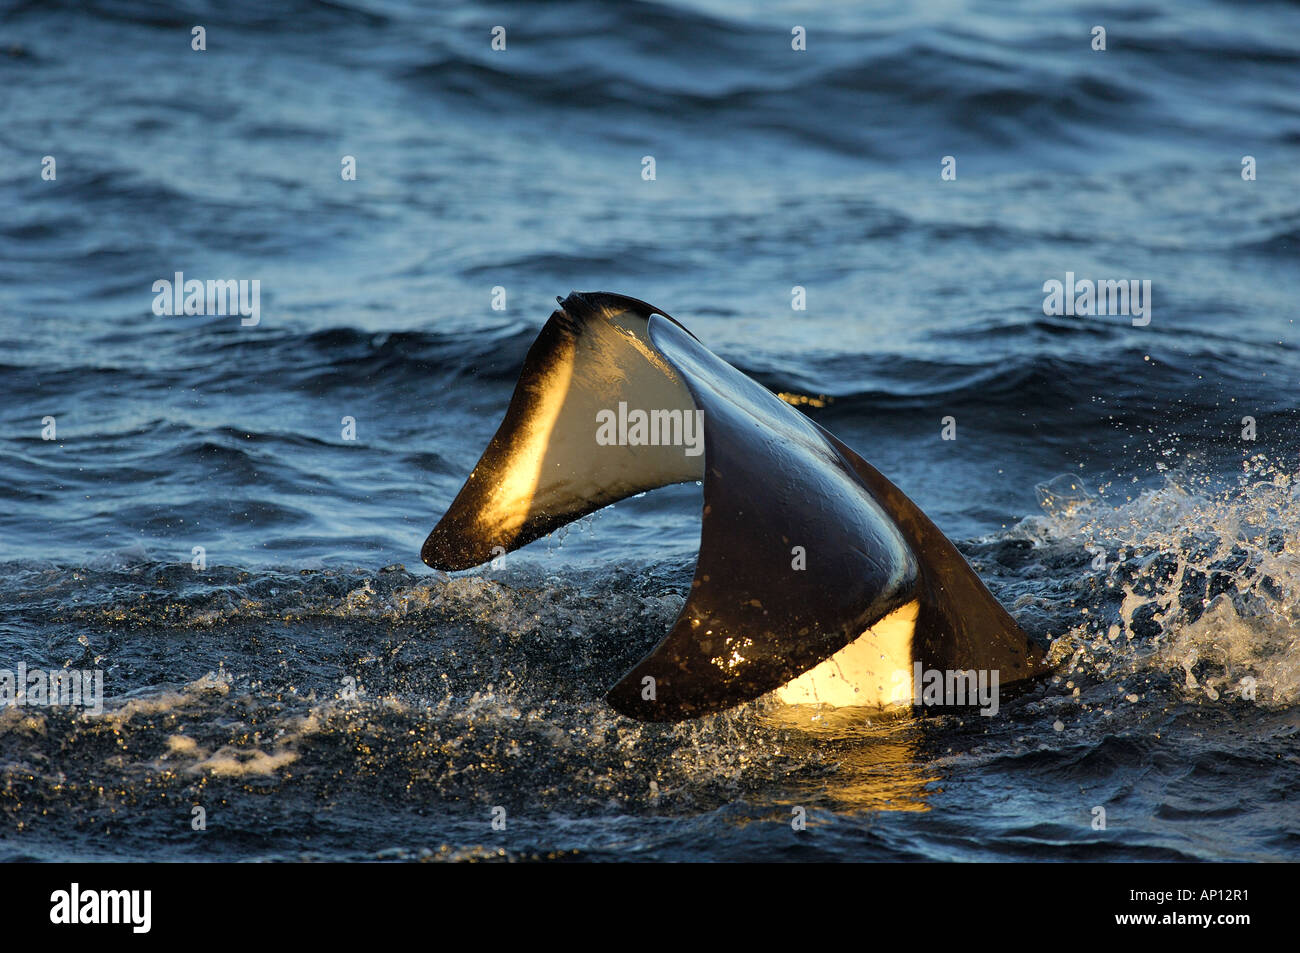 Orca or Killer whale (Orcinus orca) tail slapping - Stock Image